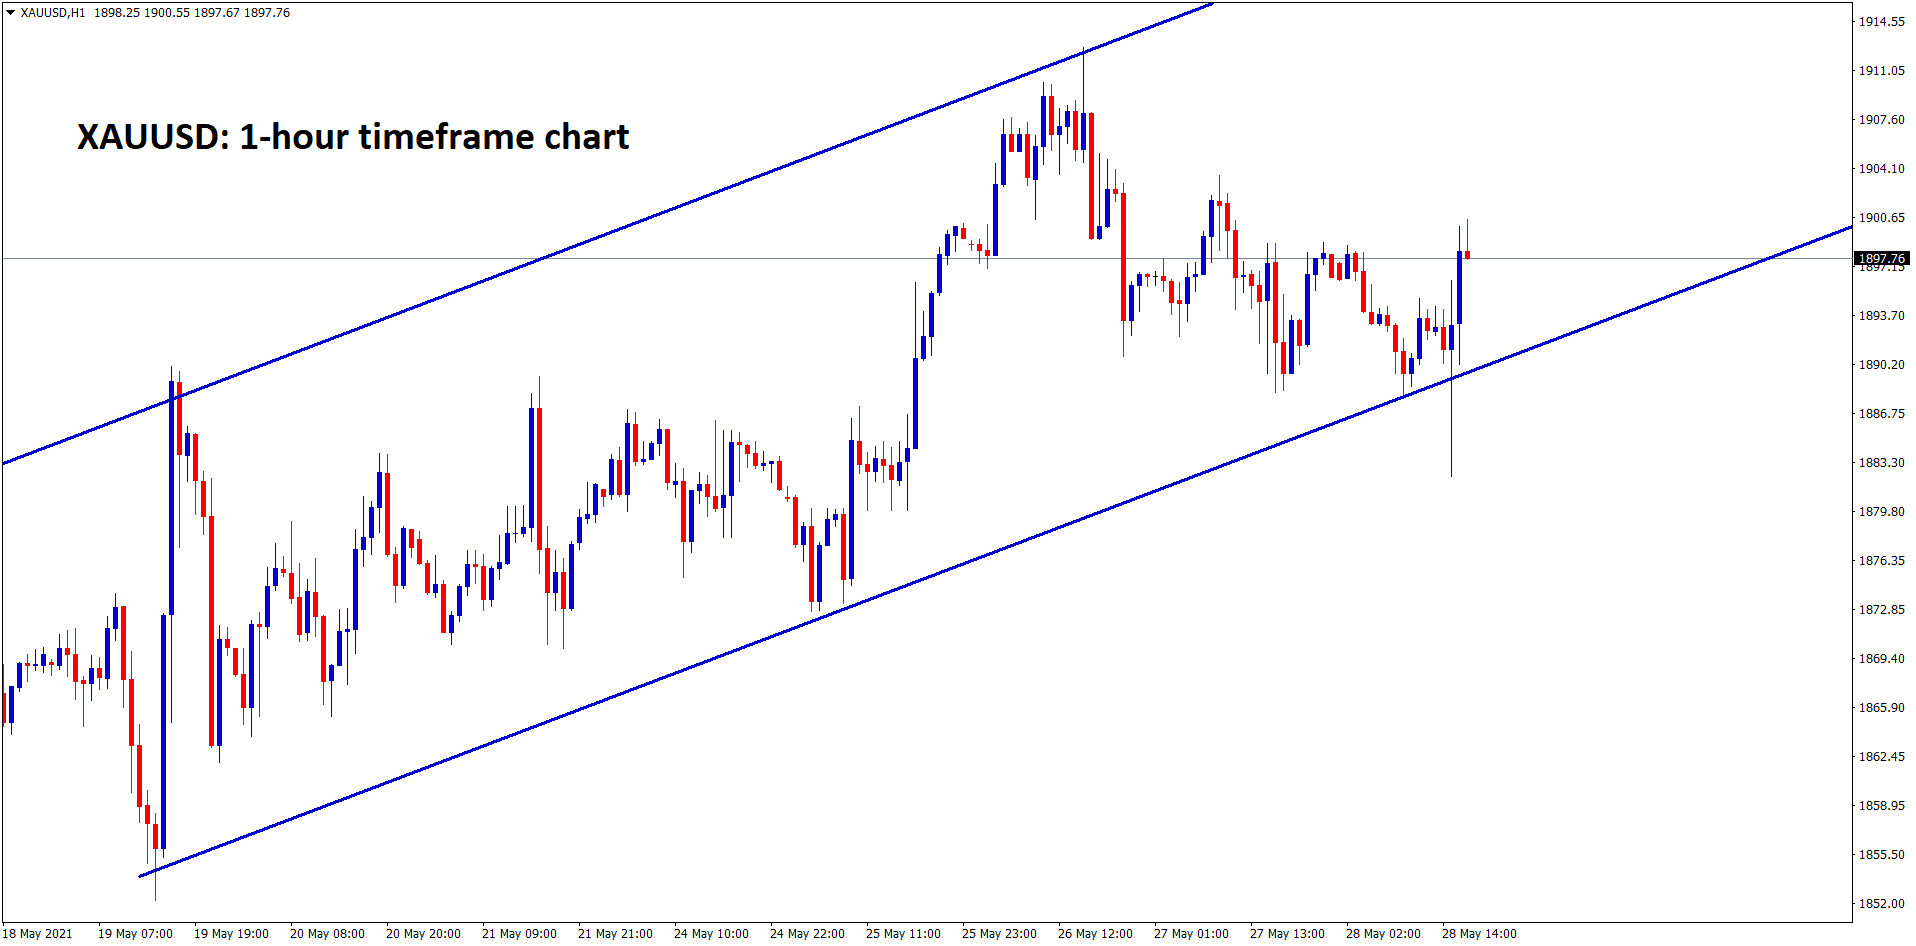 Gold XAUUSD is still moving in an Uptrend ascending channel